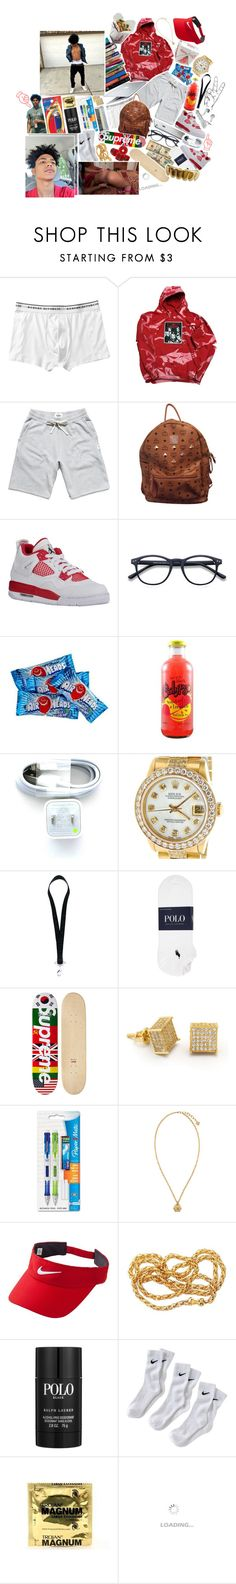 """😎💤."" by s-wishersweets ❤ liked on Polyvore featuring Banana Republic, Reigning Champ, MCM, Rolex, 7 For All Mankind, Givenchy, Polo Ralph Lauren, King Ice, Paper Mate and Versace"